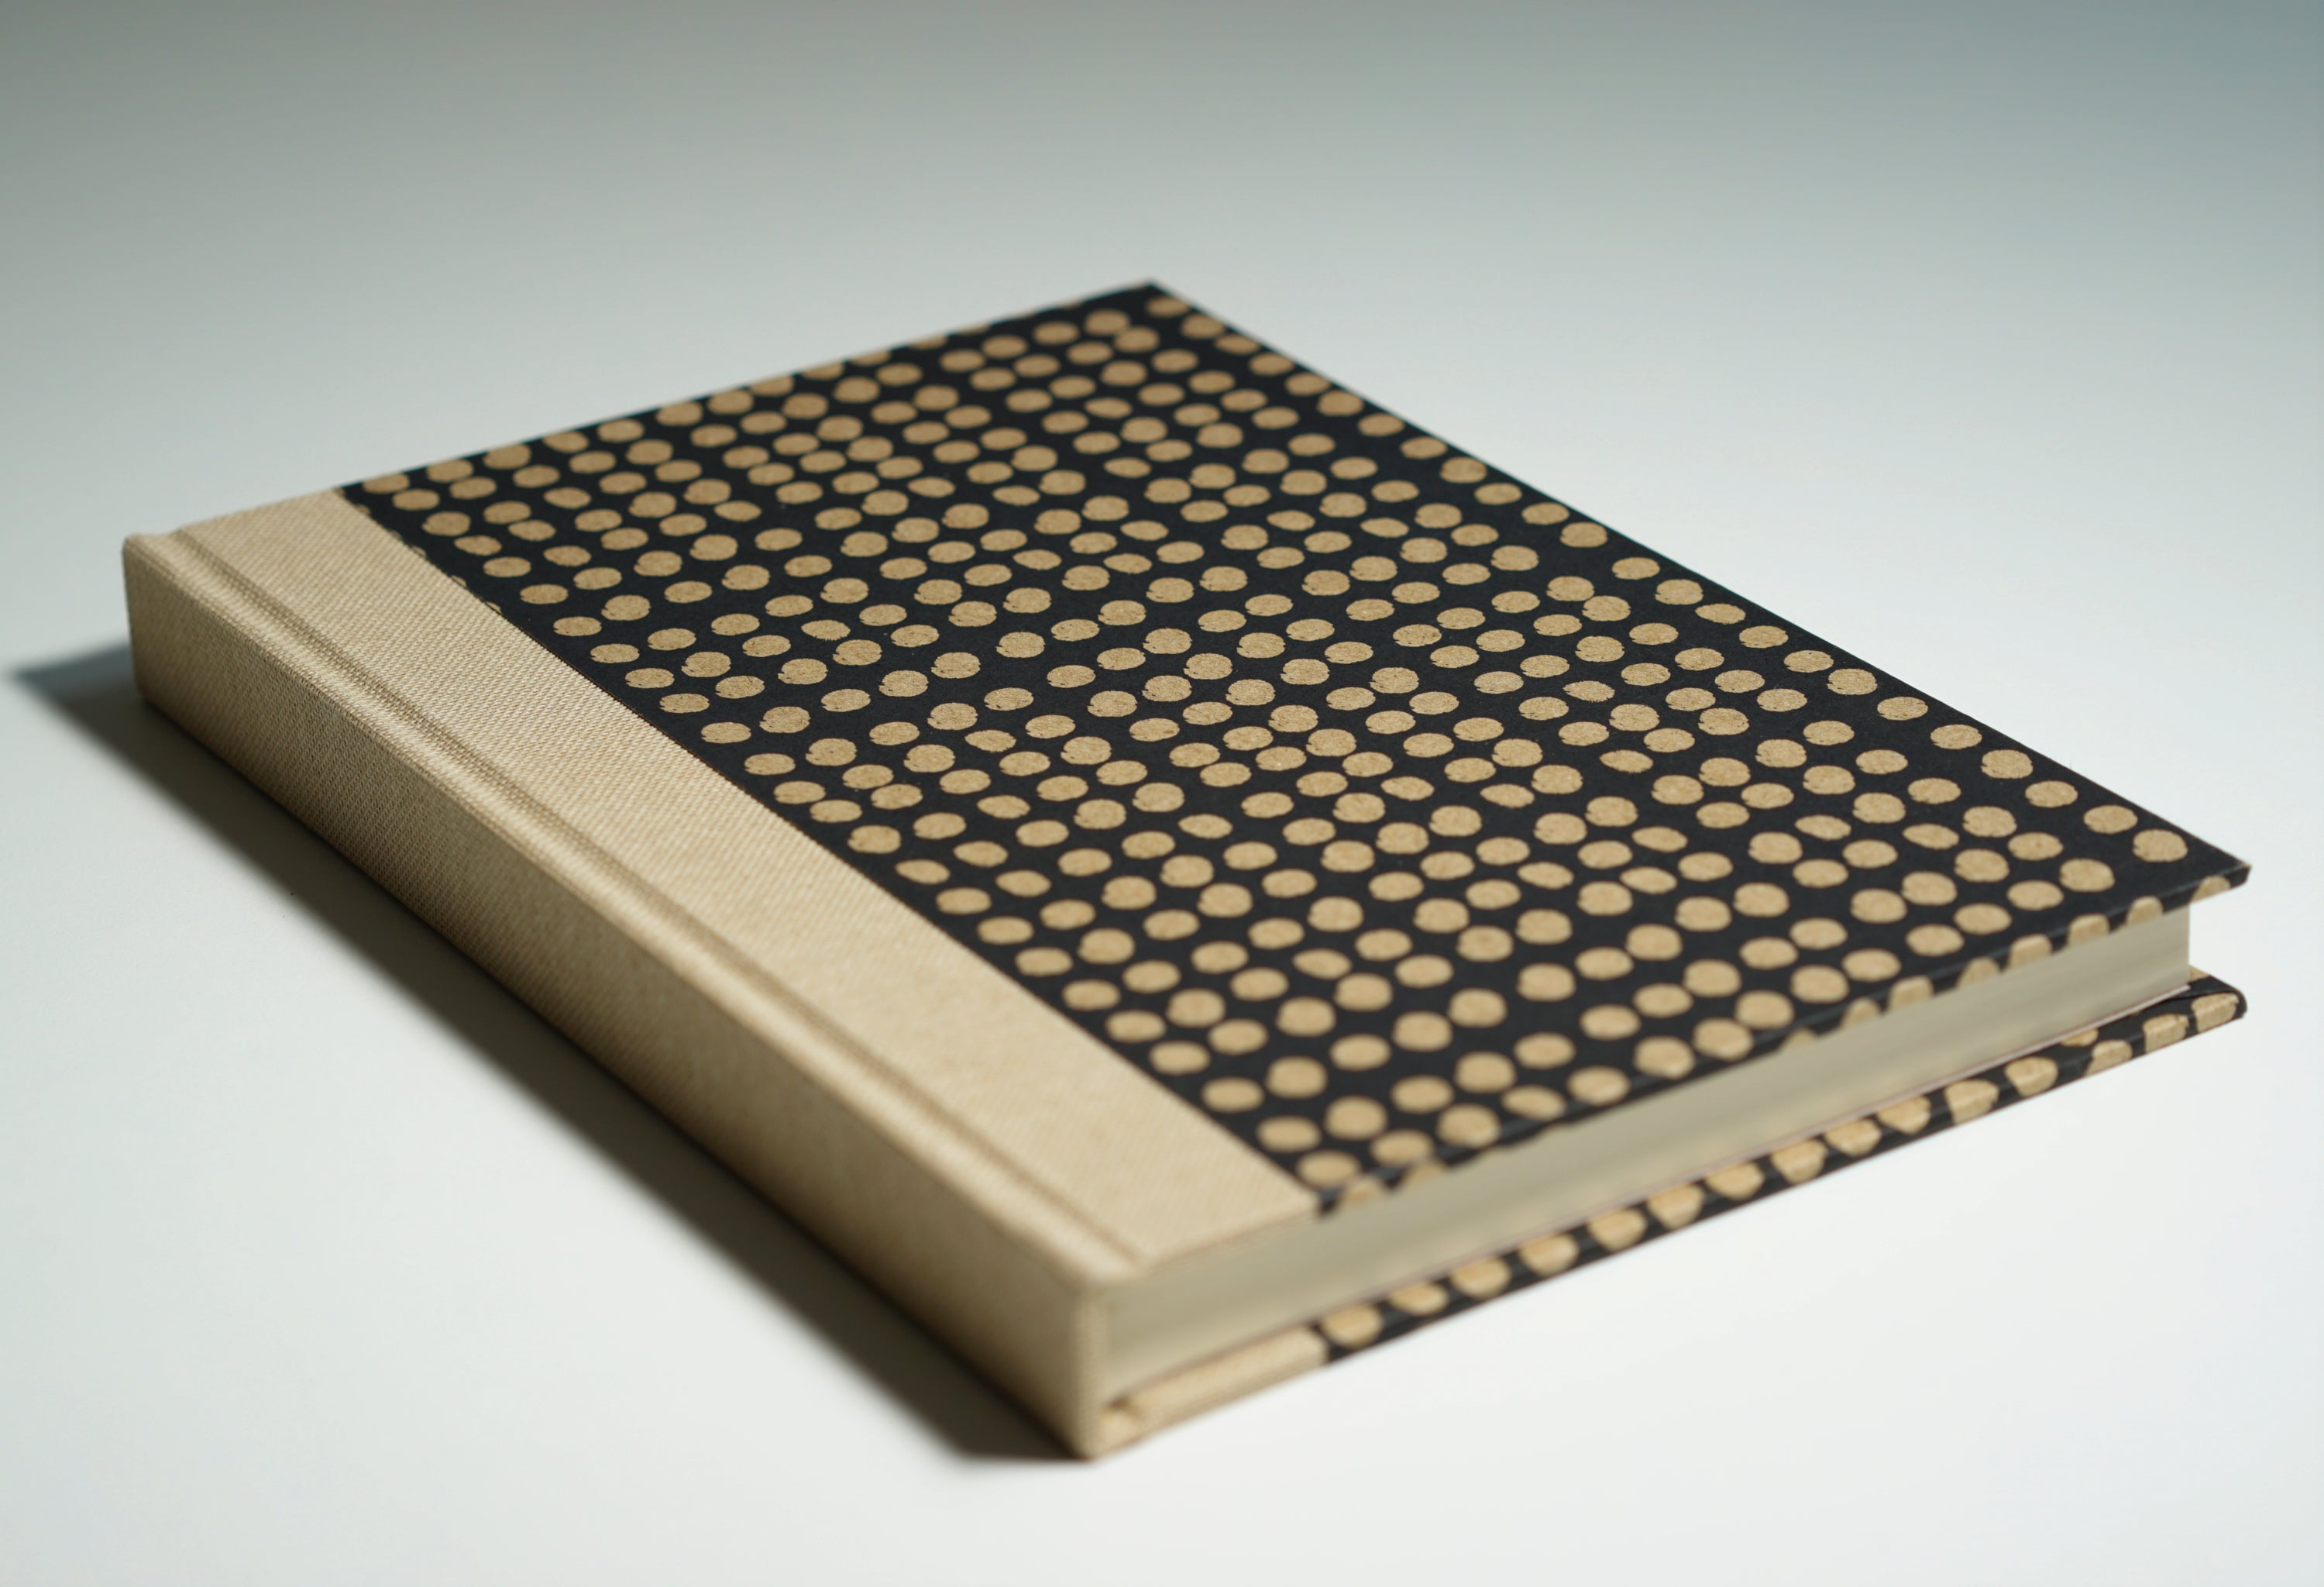 black notebook with oatmeal spine and oatmeal dotted pattern